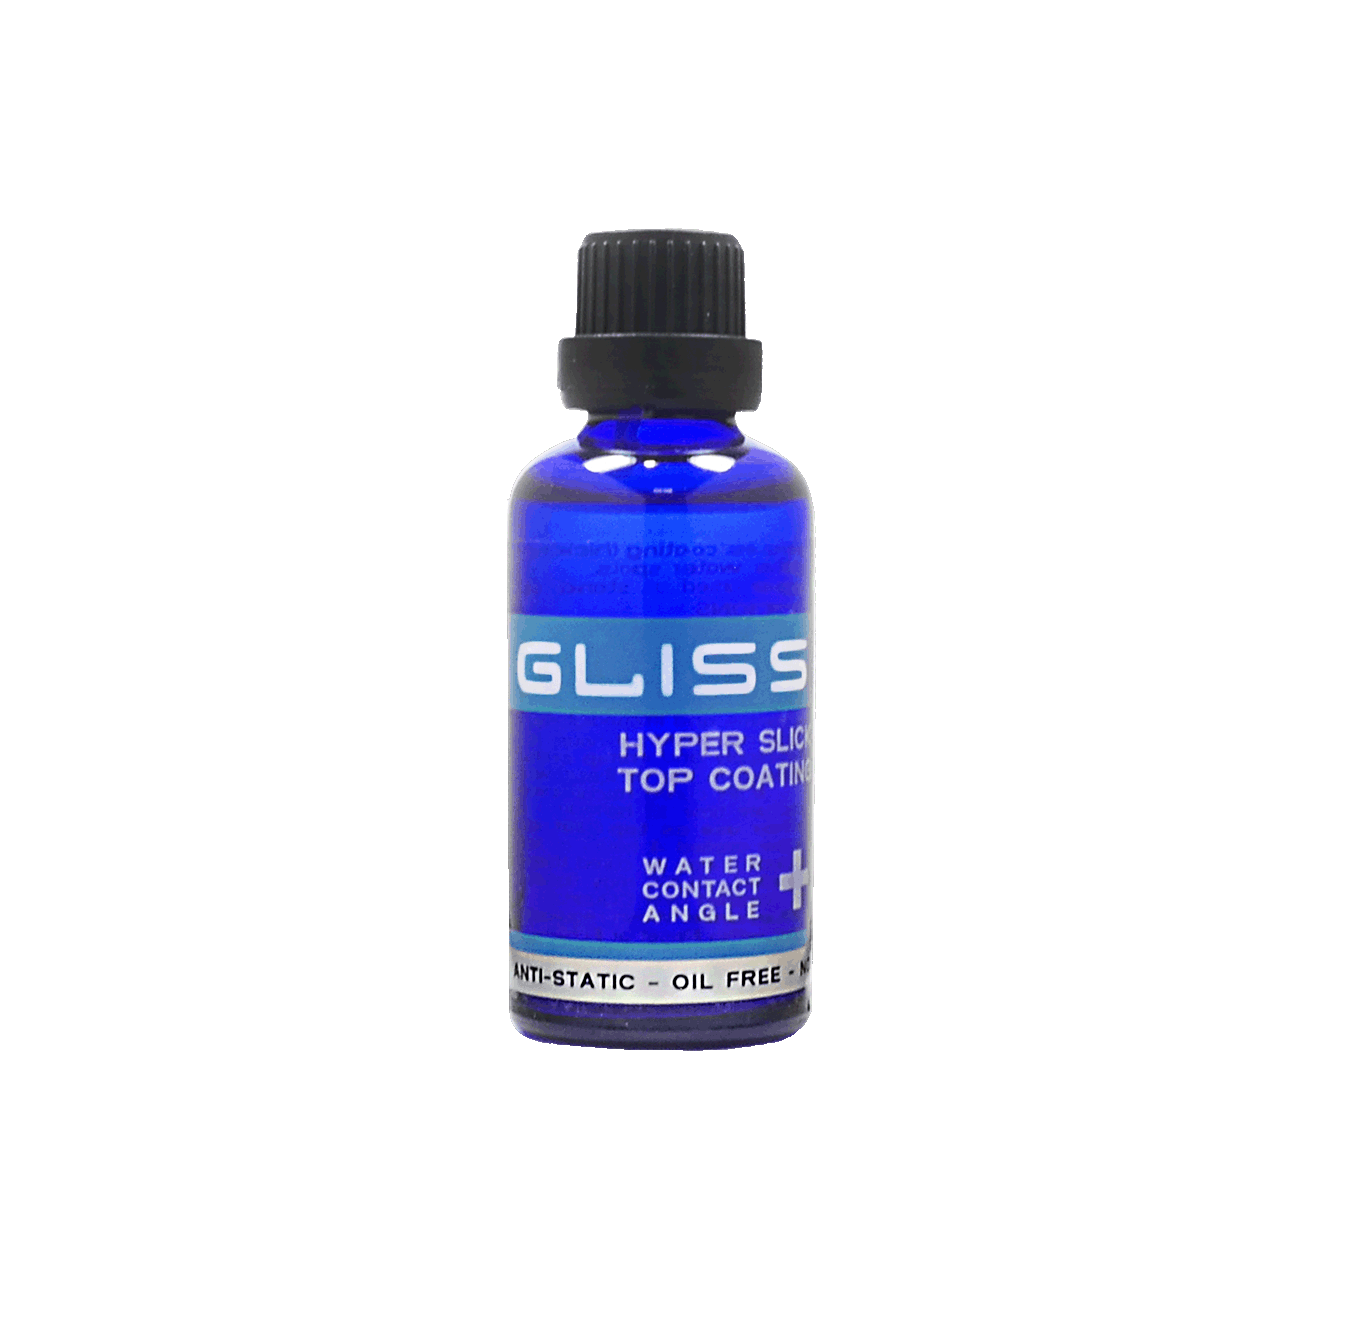 Gliss – Hyper Slick Top Coating